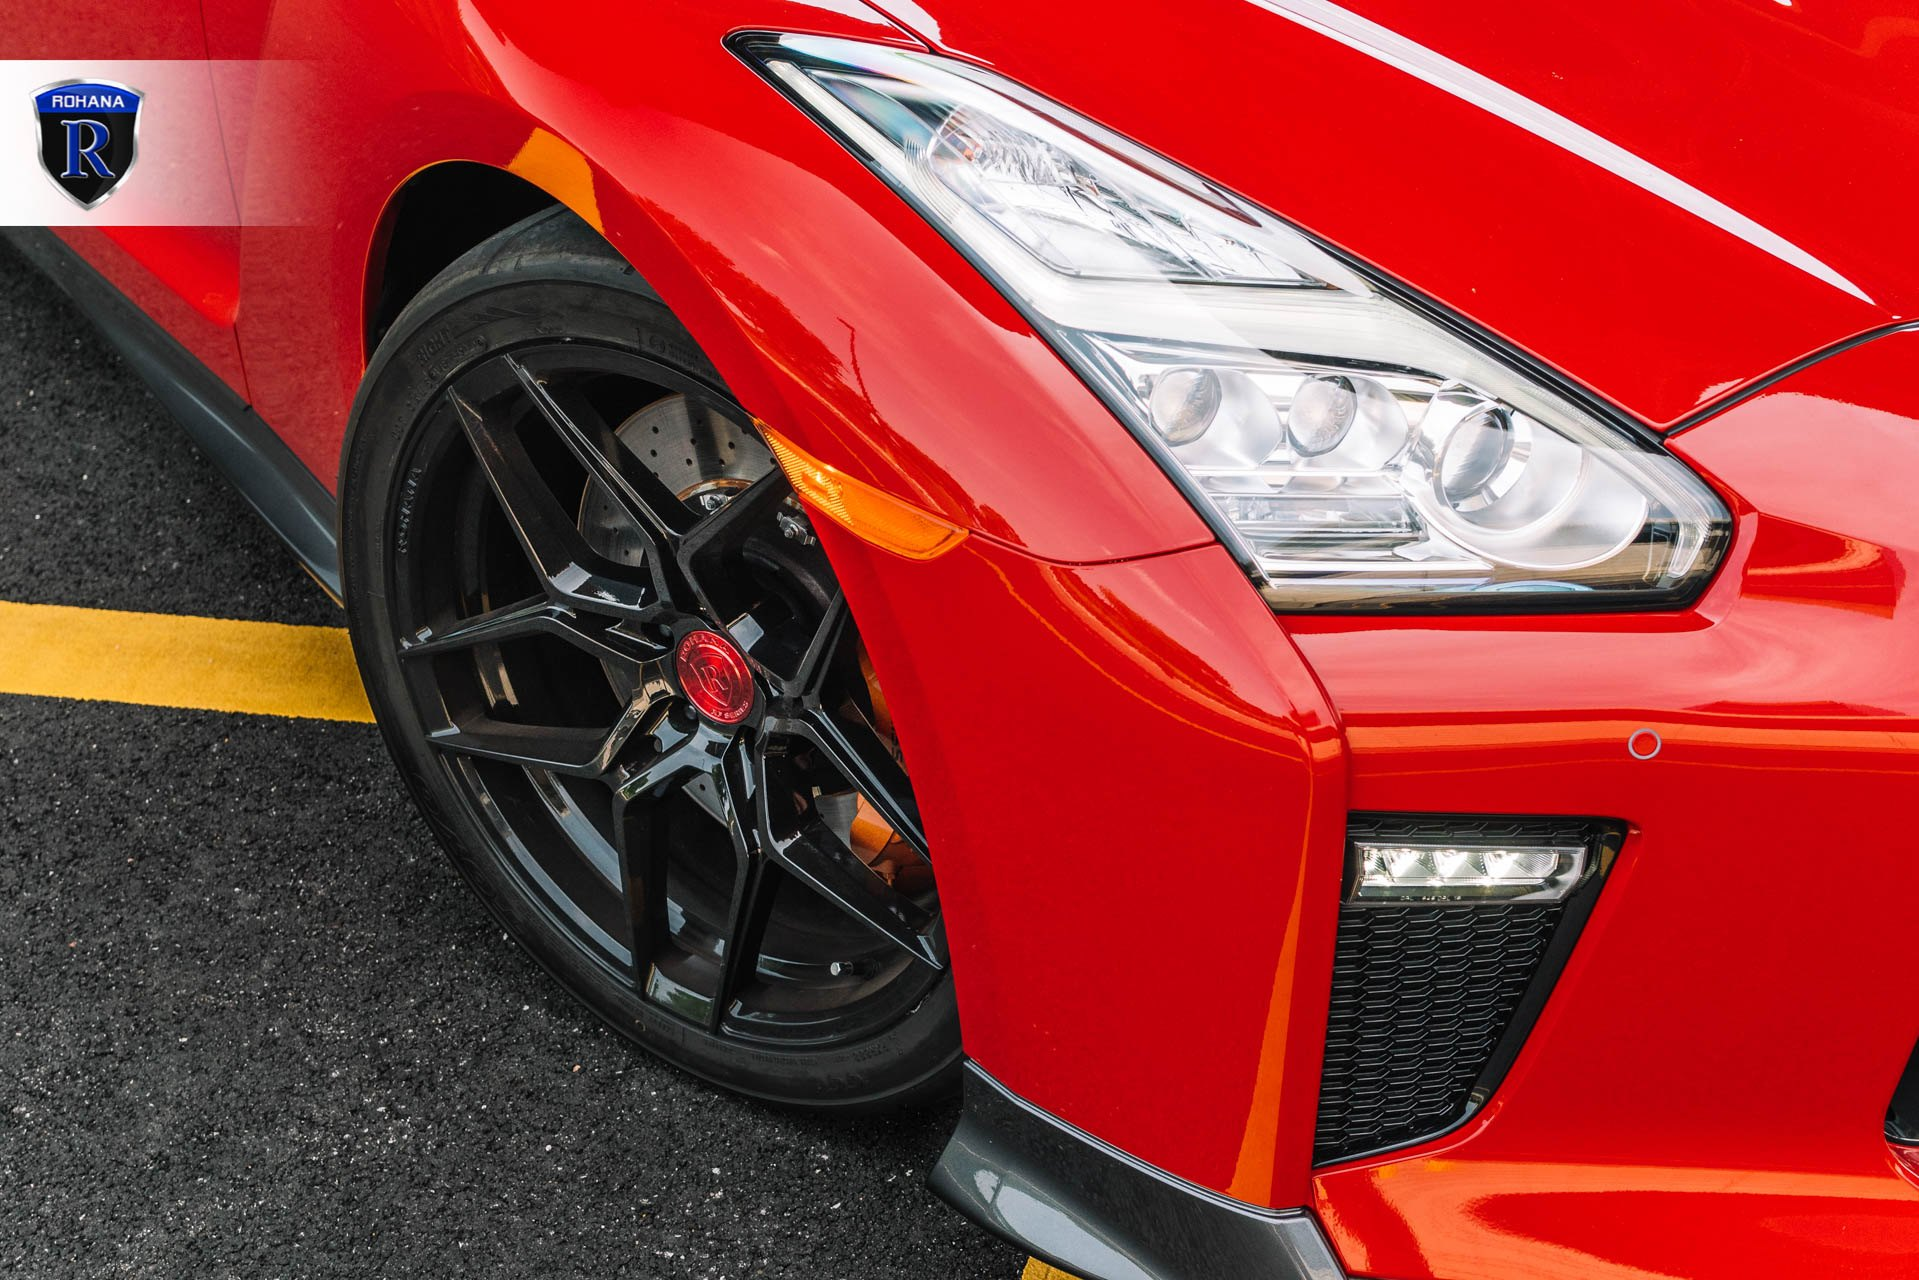 Red Nissan GT-R with Custom Gloss Black Rohana Rims - Photo by Rohana Wheels